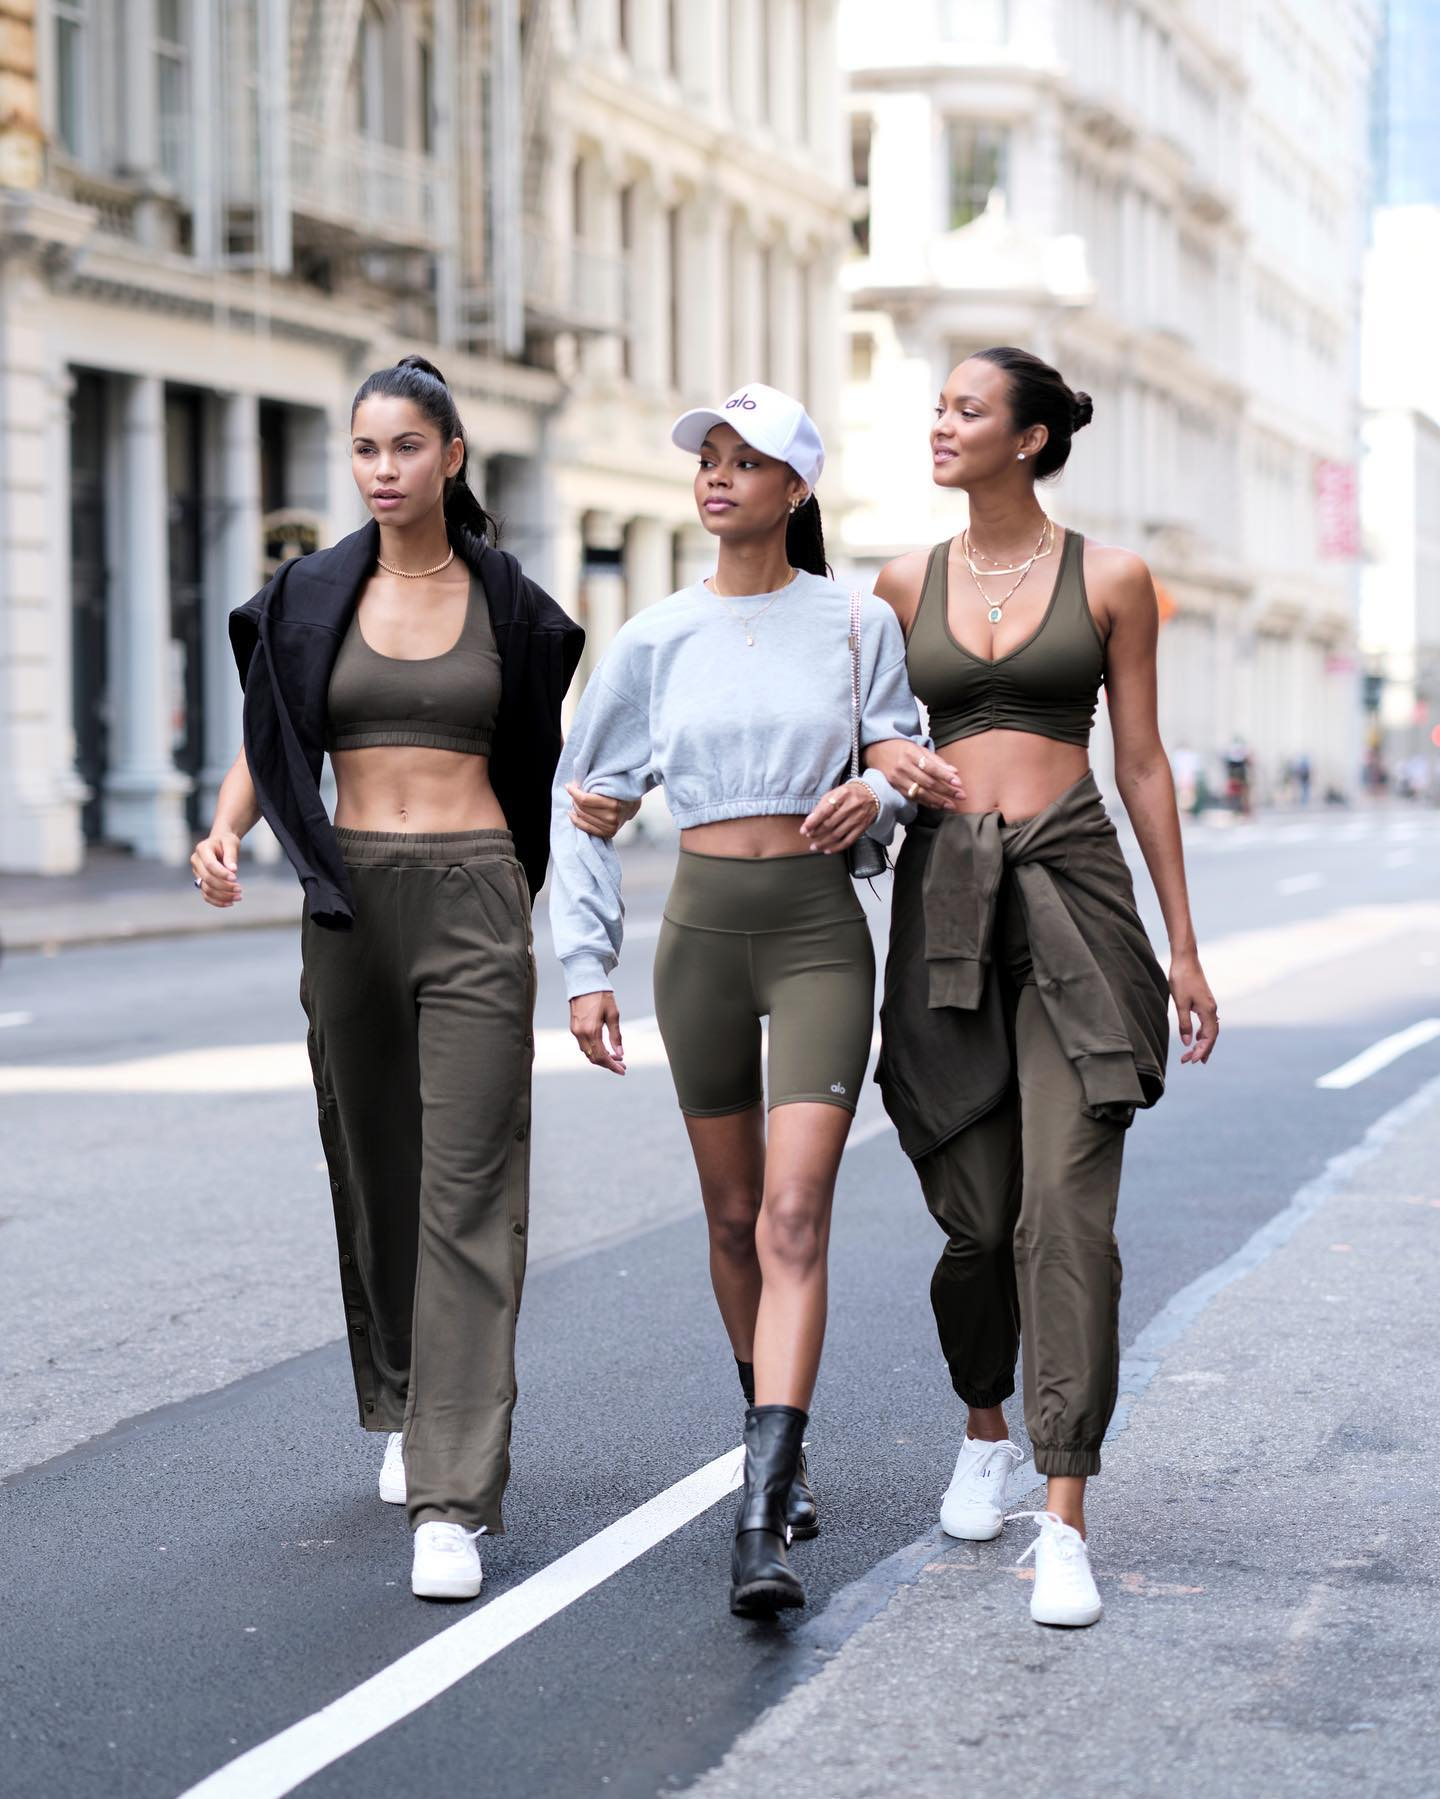 @daianesodre, @laisribeiro, and @taelorthein wear off-duty model looks while roaming the streets of New York during New York Fashion Week.